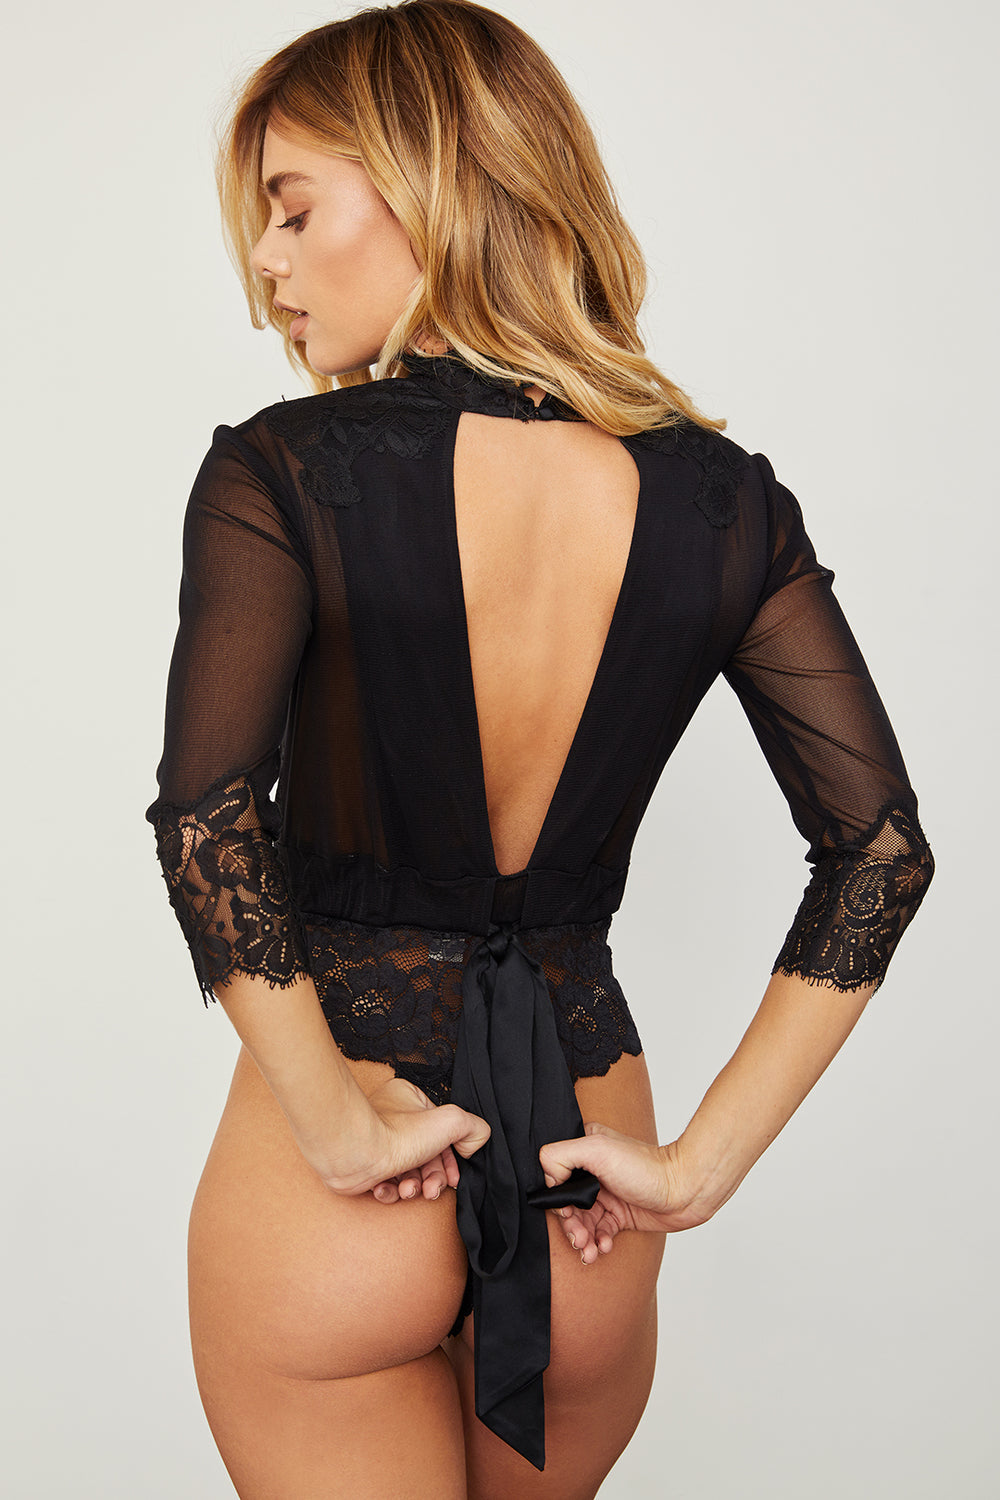 revolve black reversible vintage inspired mesh and lace high neck bodysuit